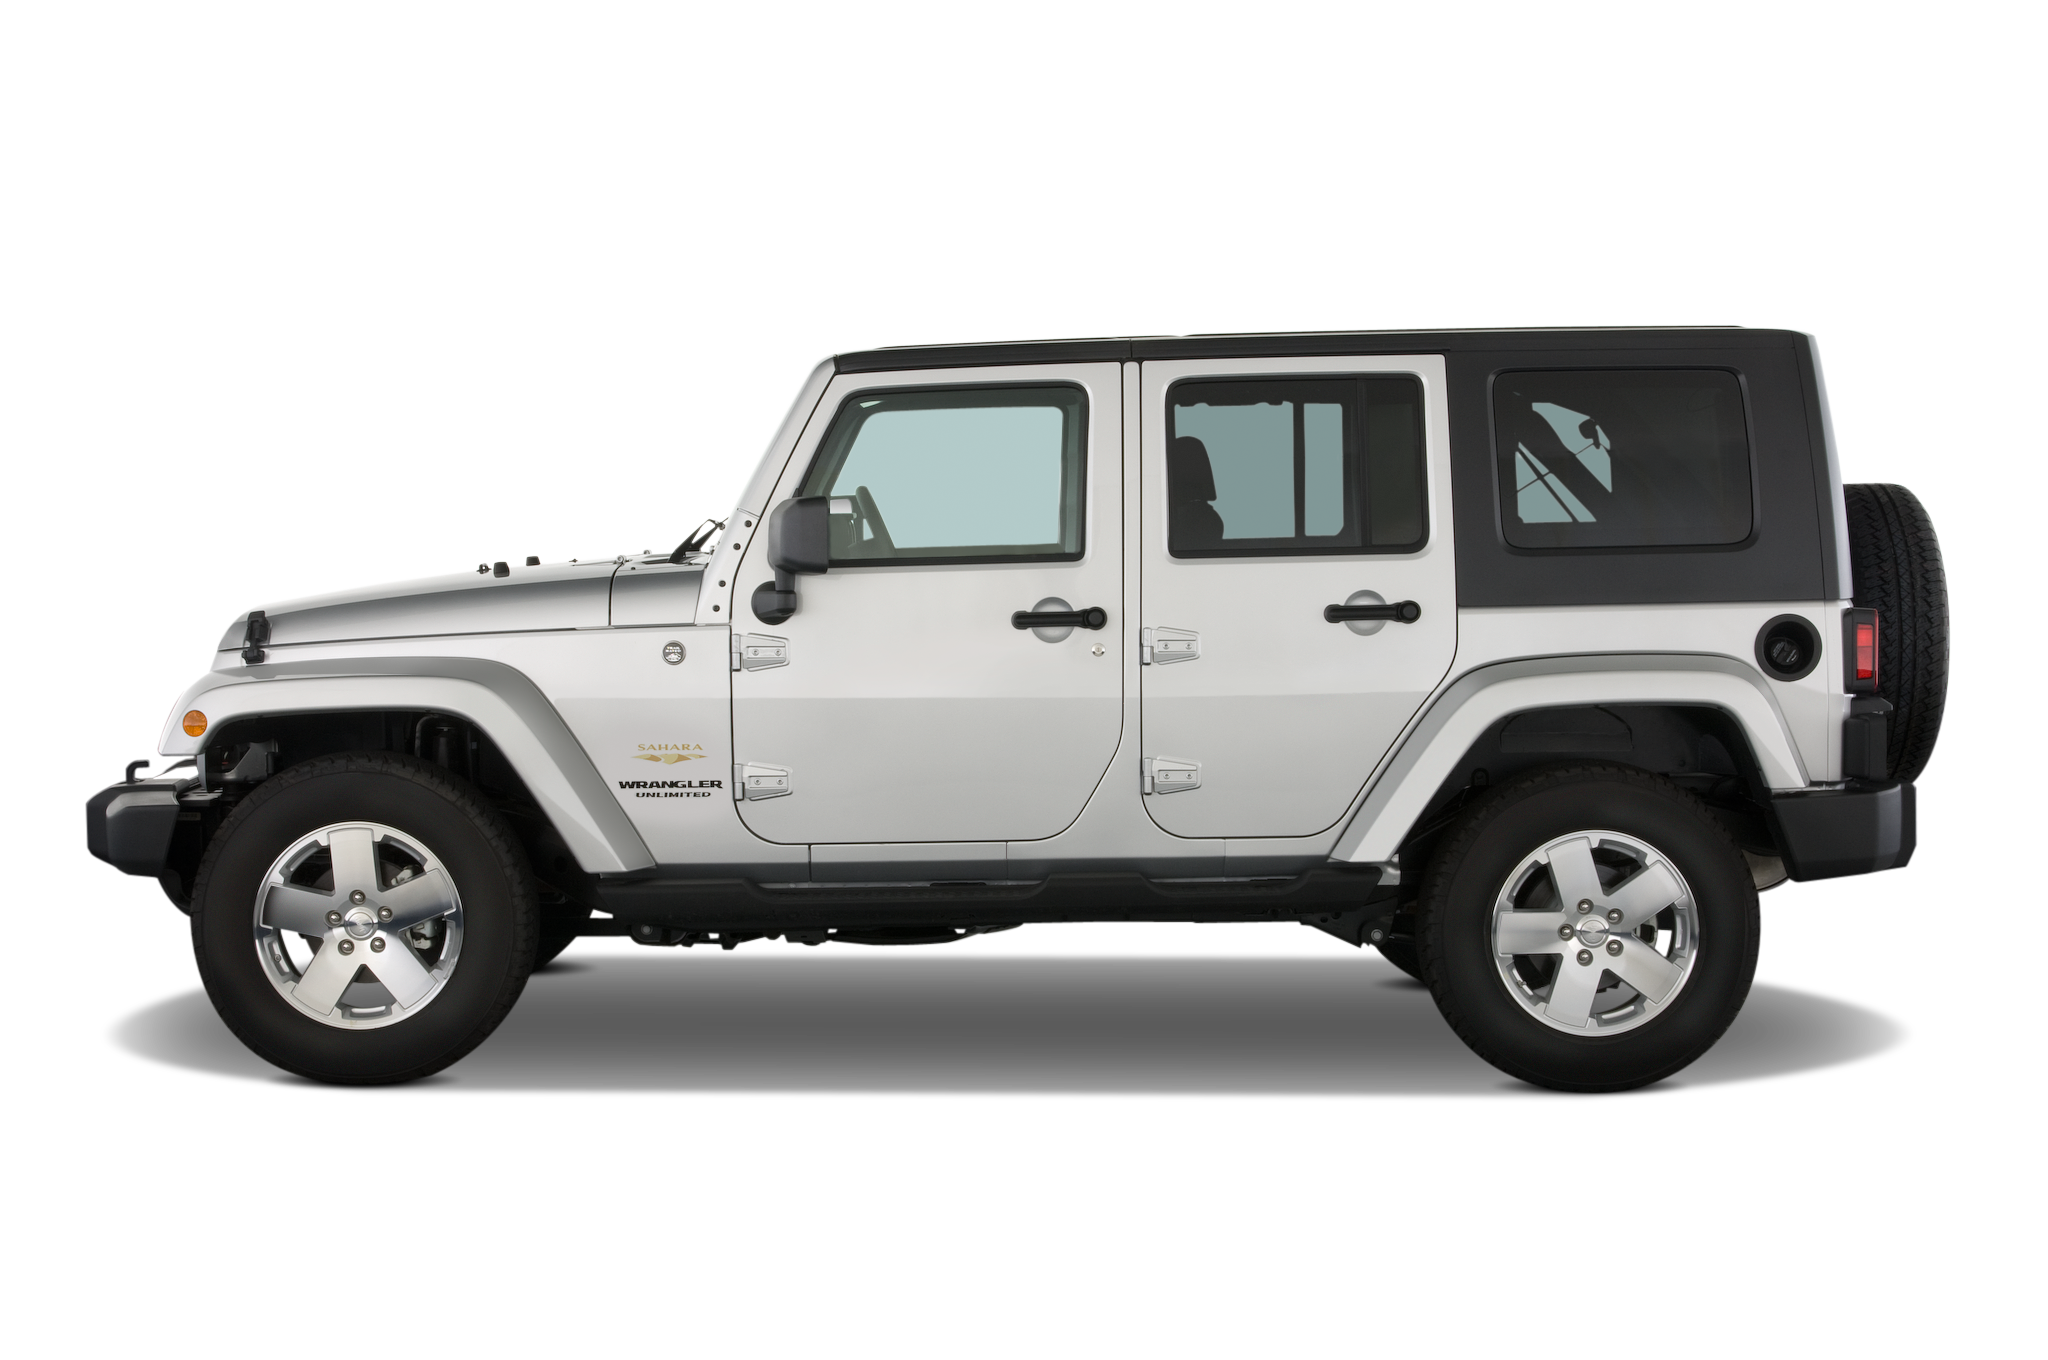 2010 Jeep Wrangler Recalled Due To Automatic Transmission Fire Risk 1997 Engine Diagram 17 99